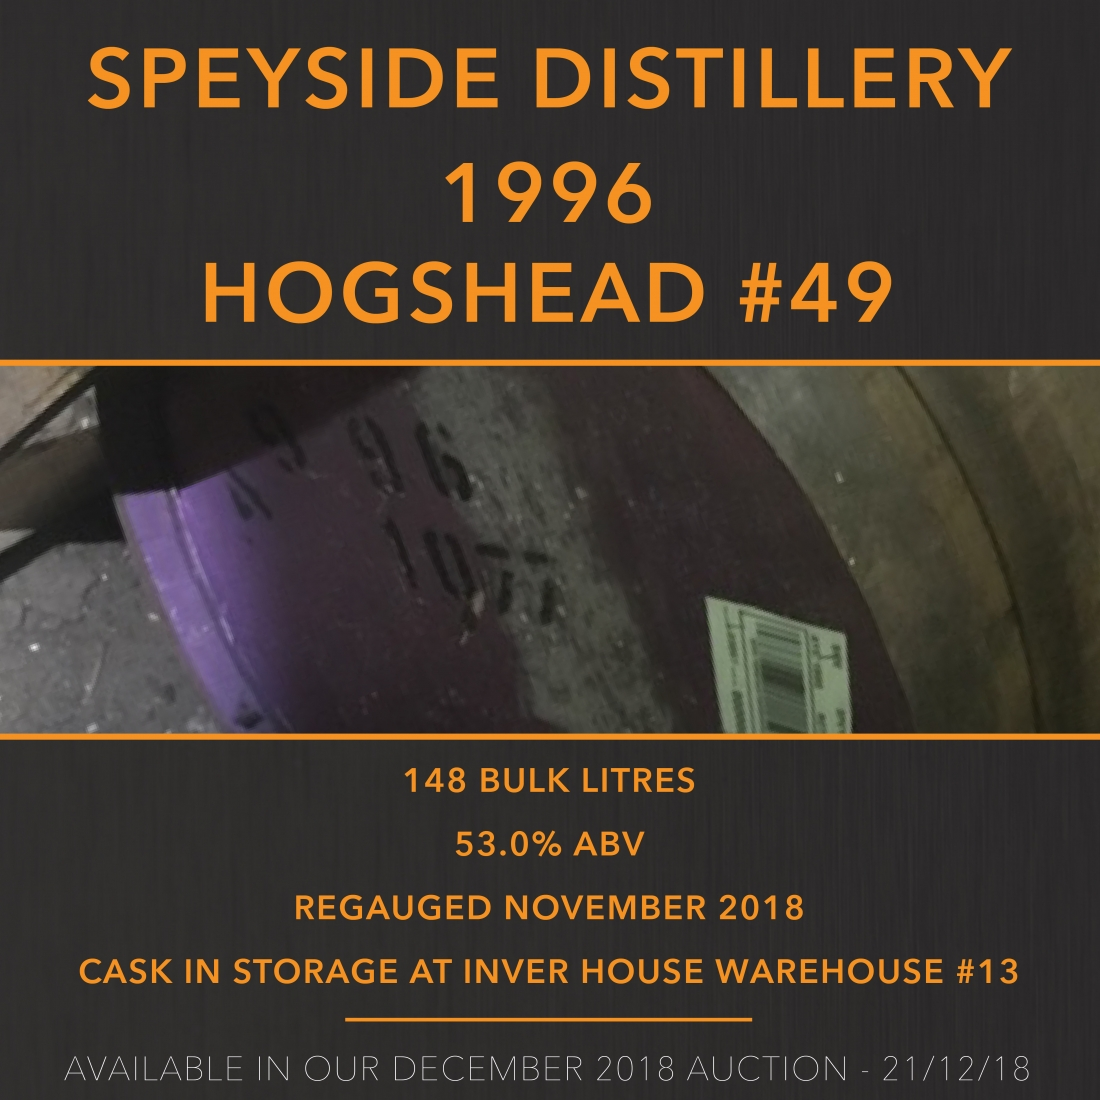 1 Speyside 1996 Hogshead #49 / Cask in storage at Inver House